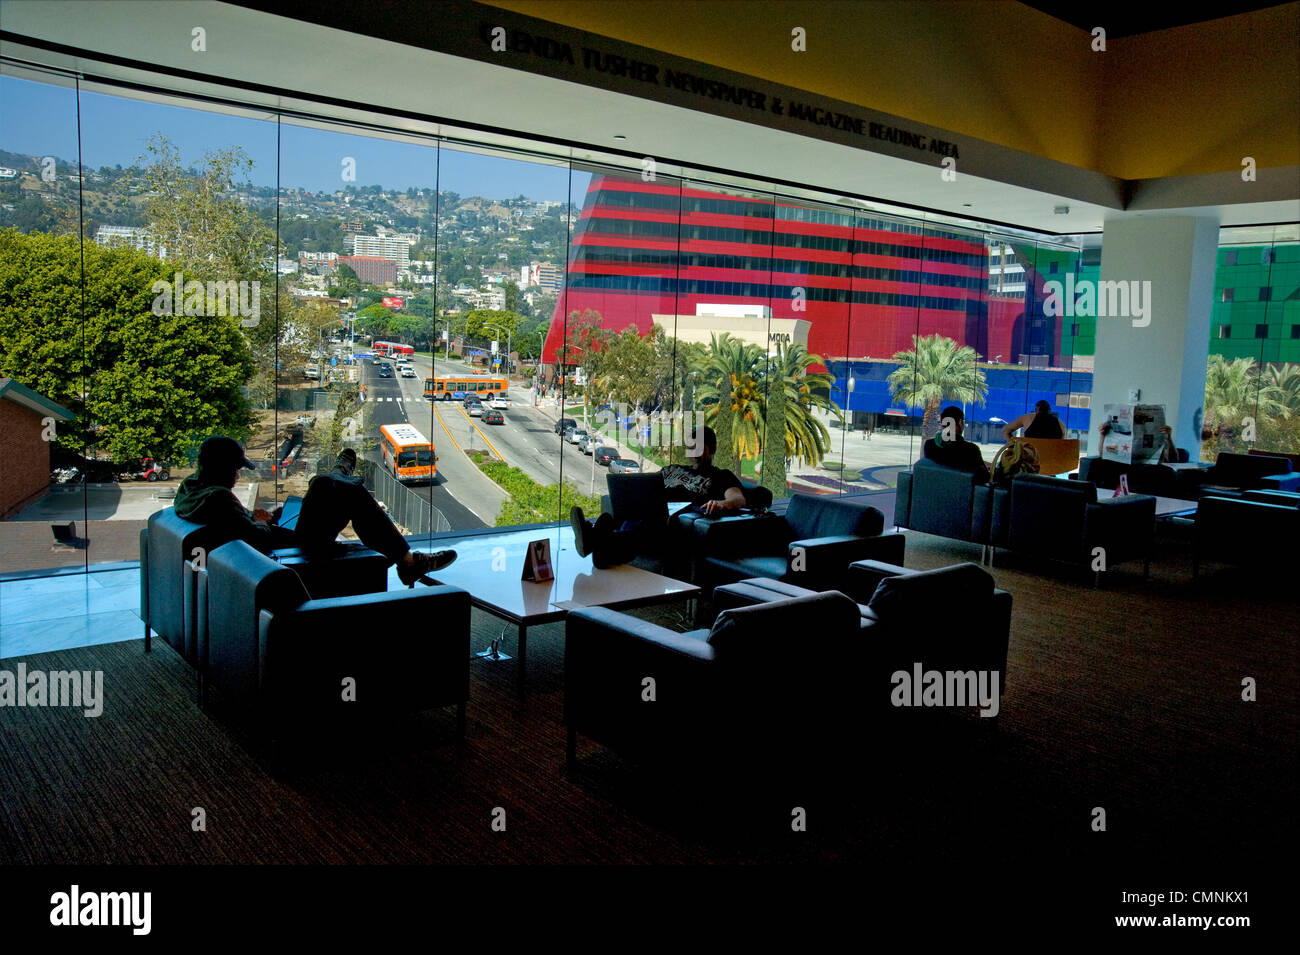 West Hollywood Public Library With View Of Pacific Design Center And  Hollywood Hills   Stock Image